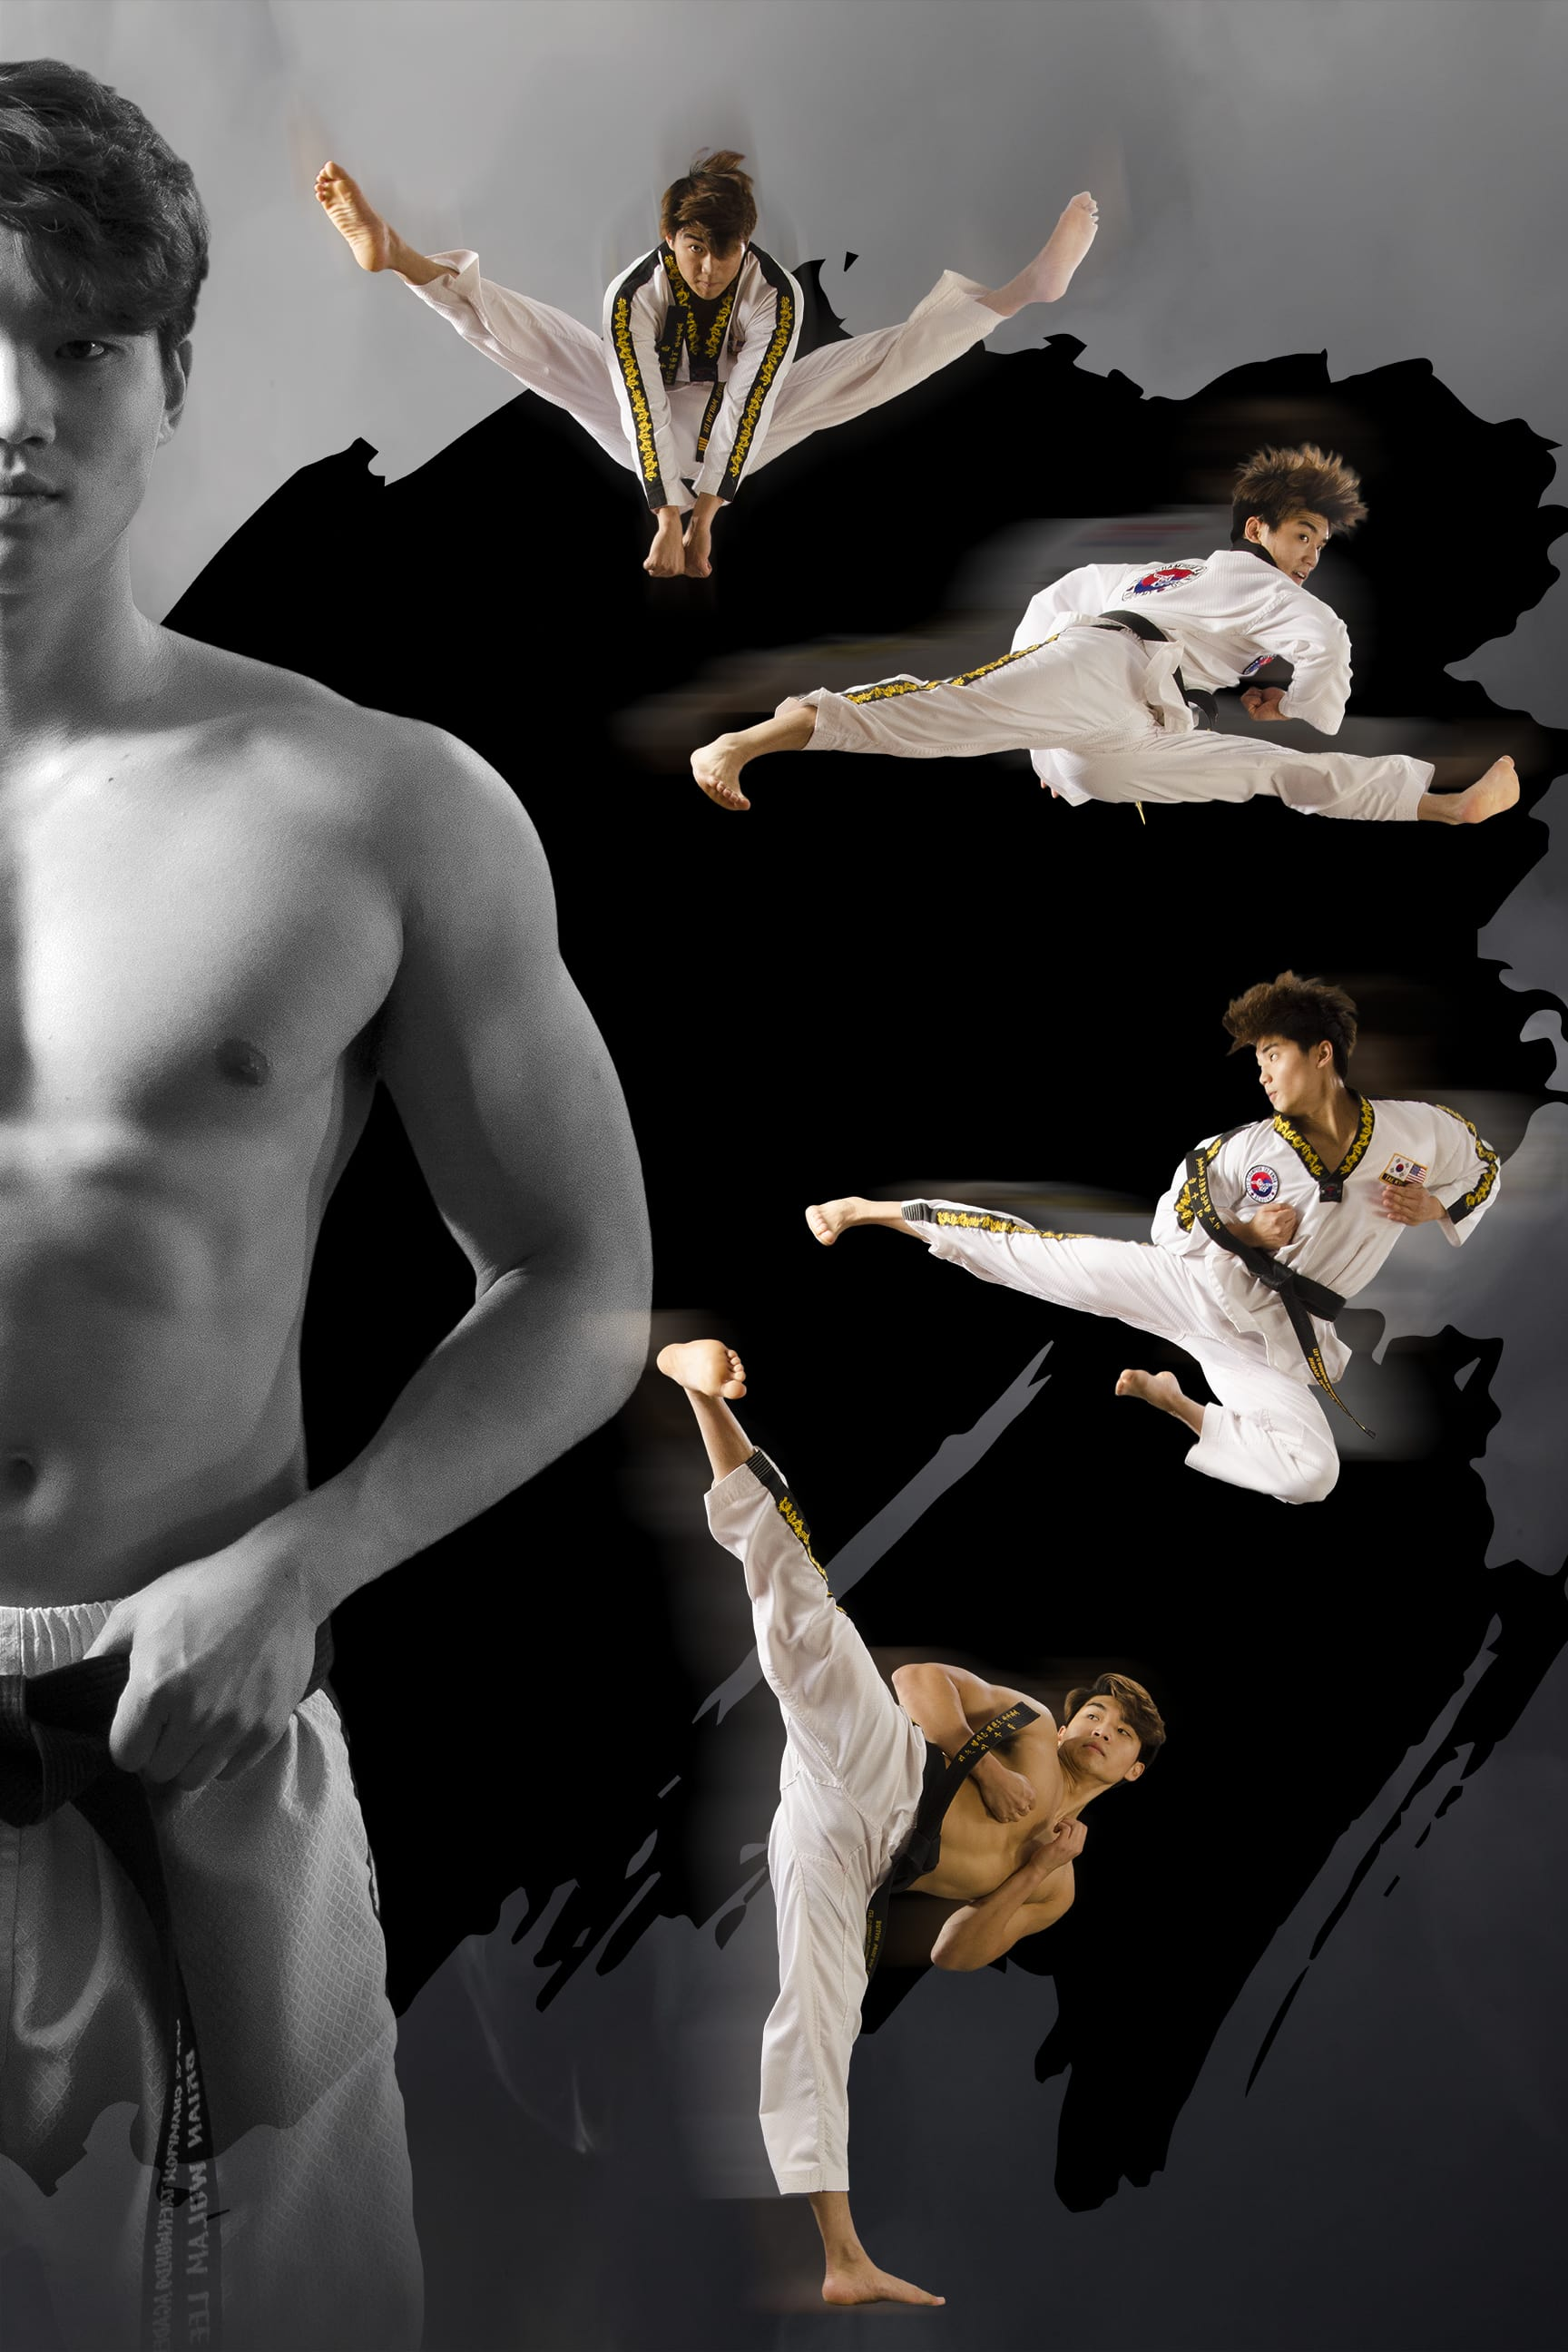 Master Brandon H Lee in Shoreview - Lee's Champion Taekwondo Academy